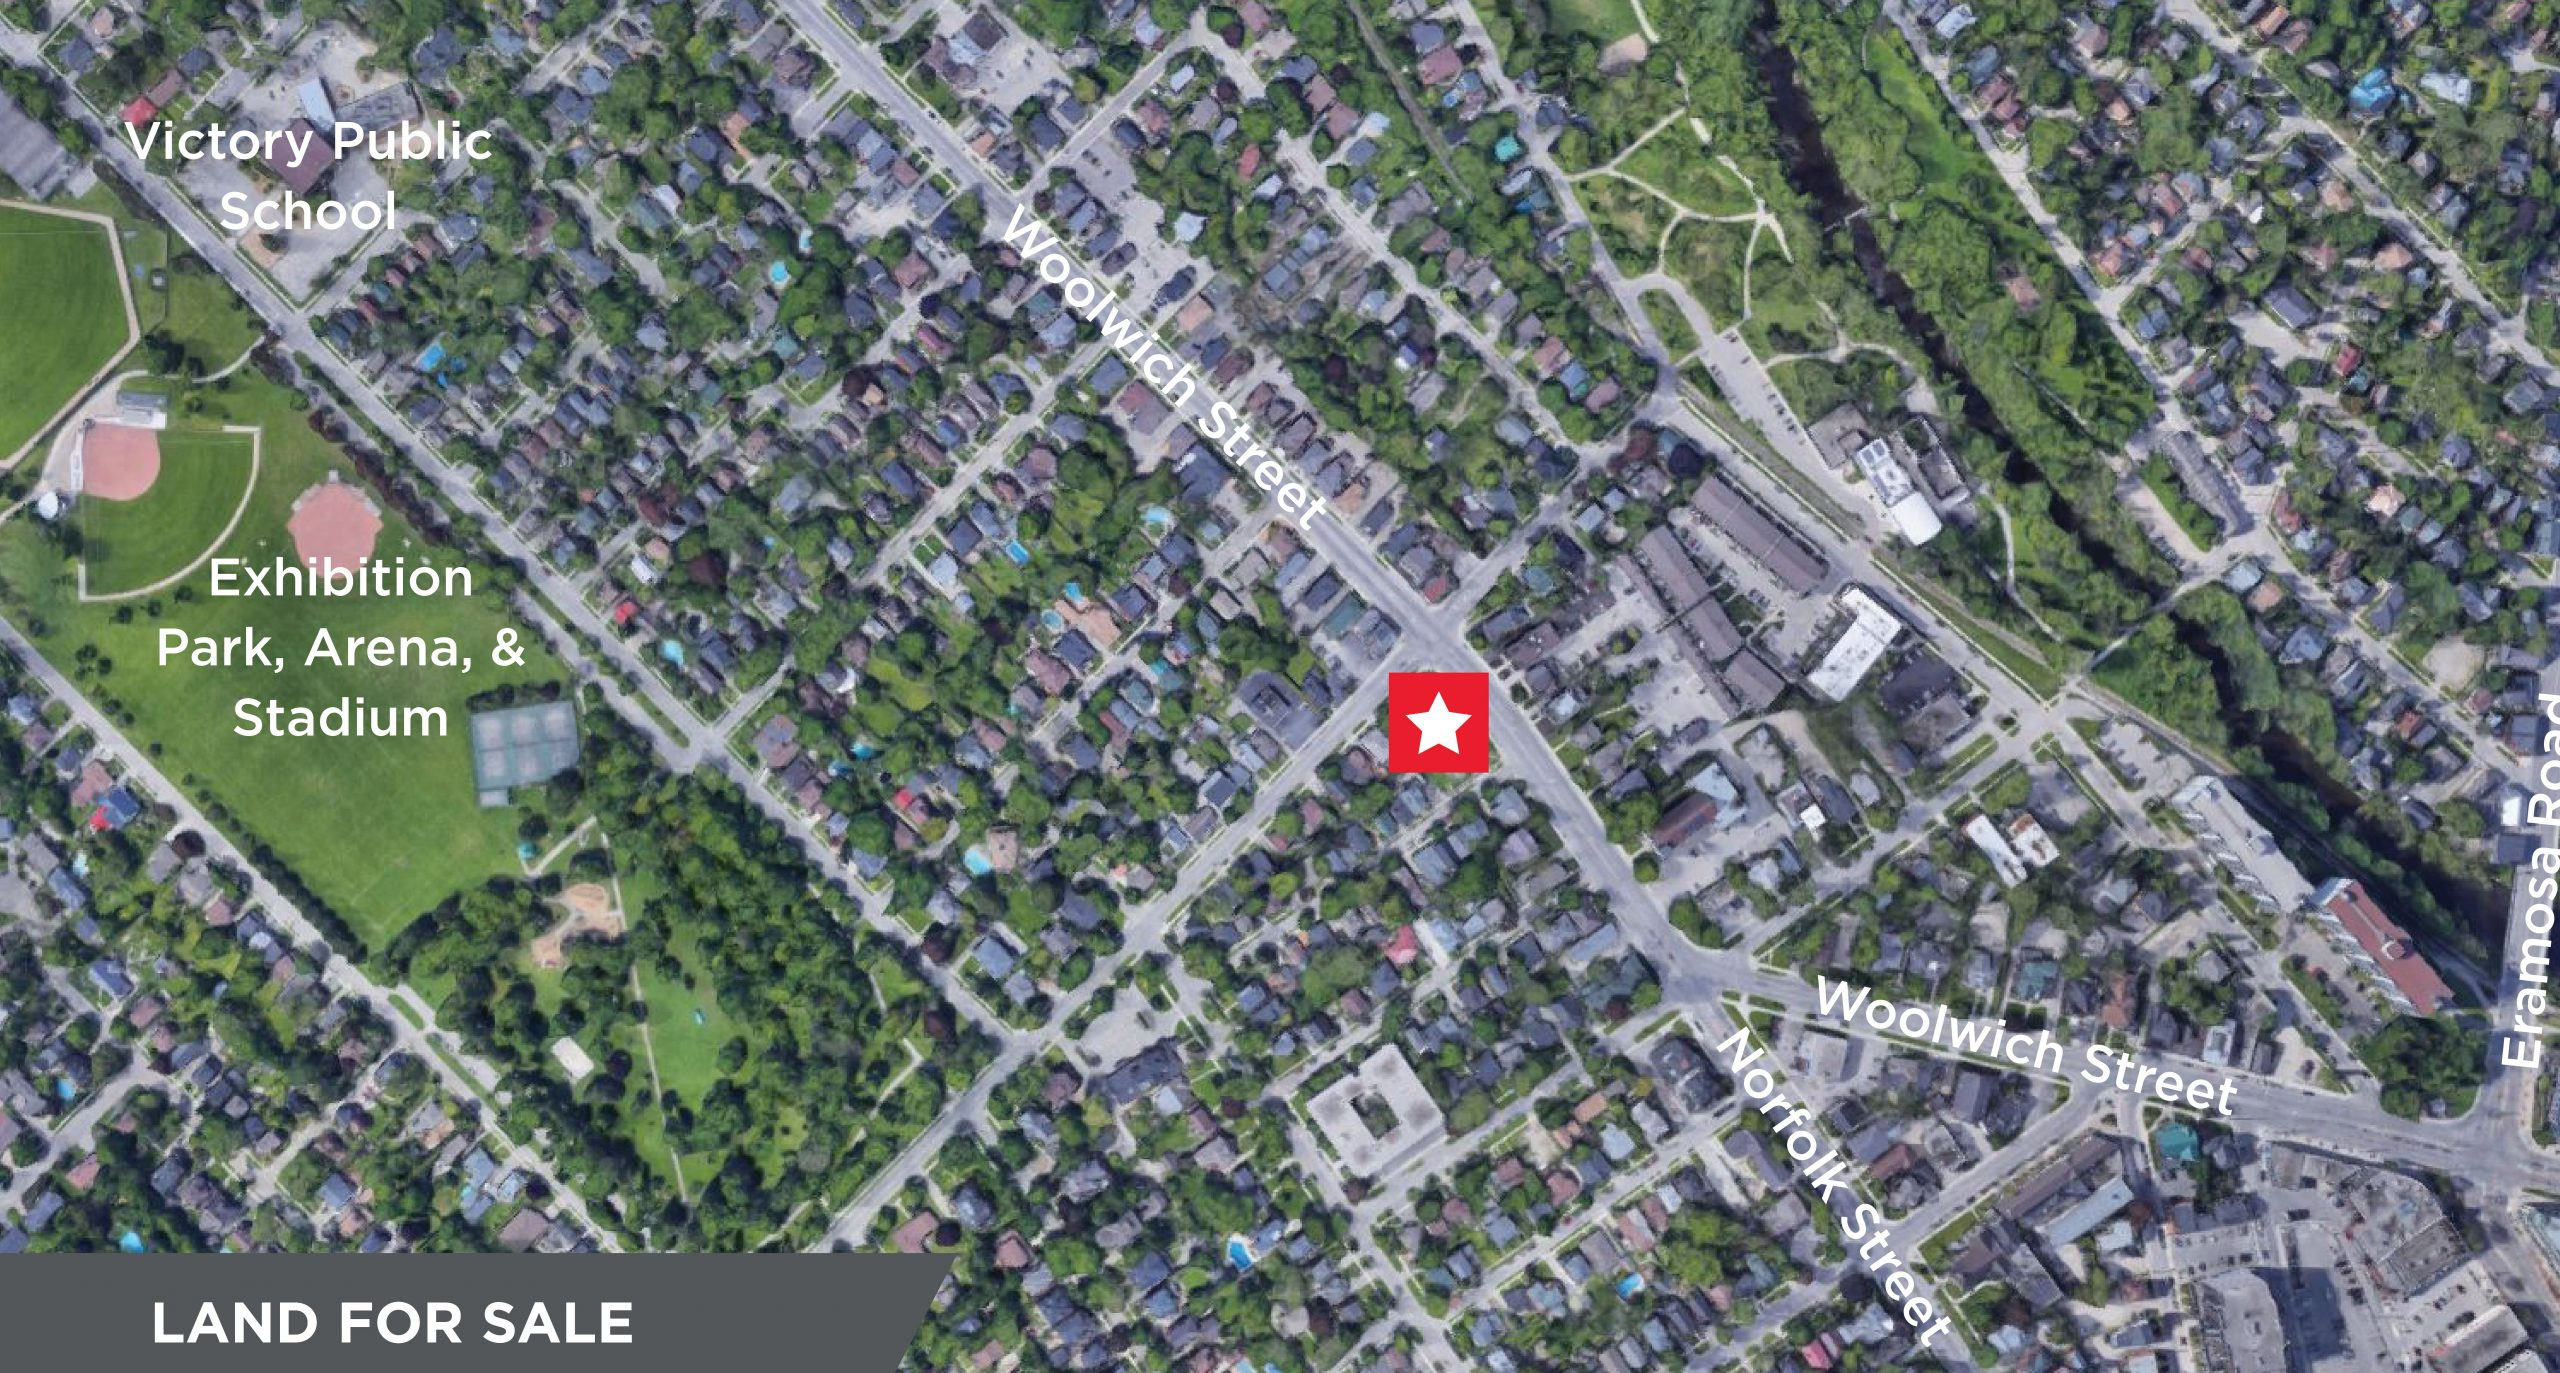 290 Woolwich Street, Guelph   Redevelopment Land Available